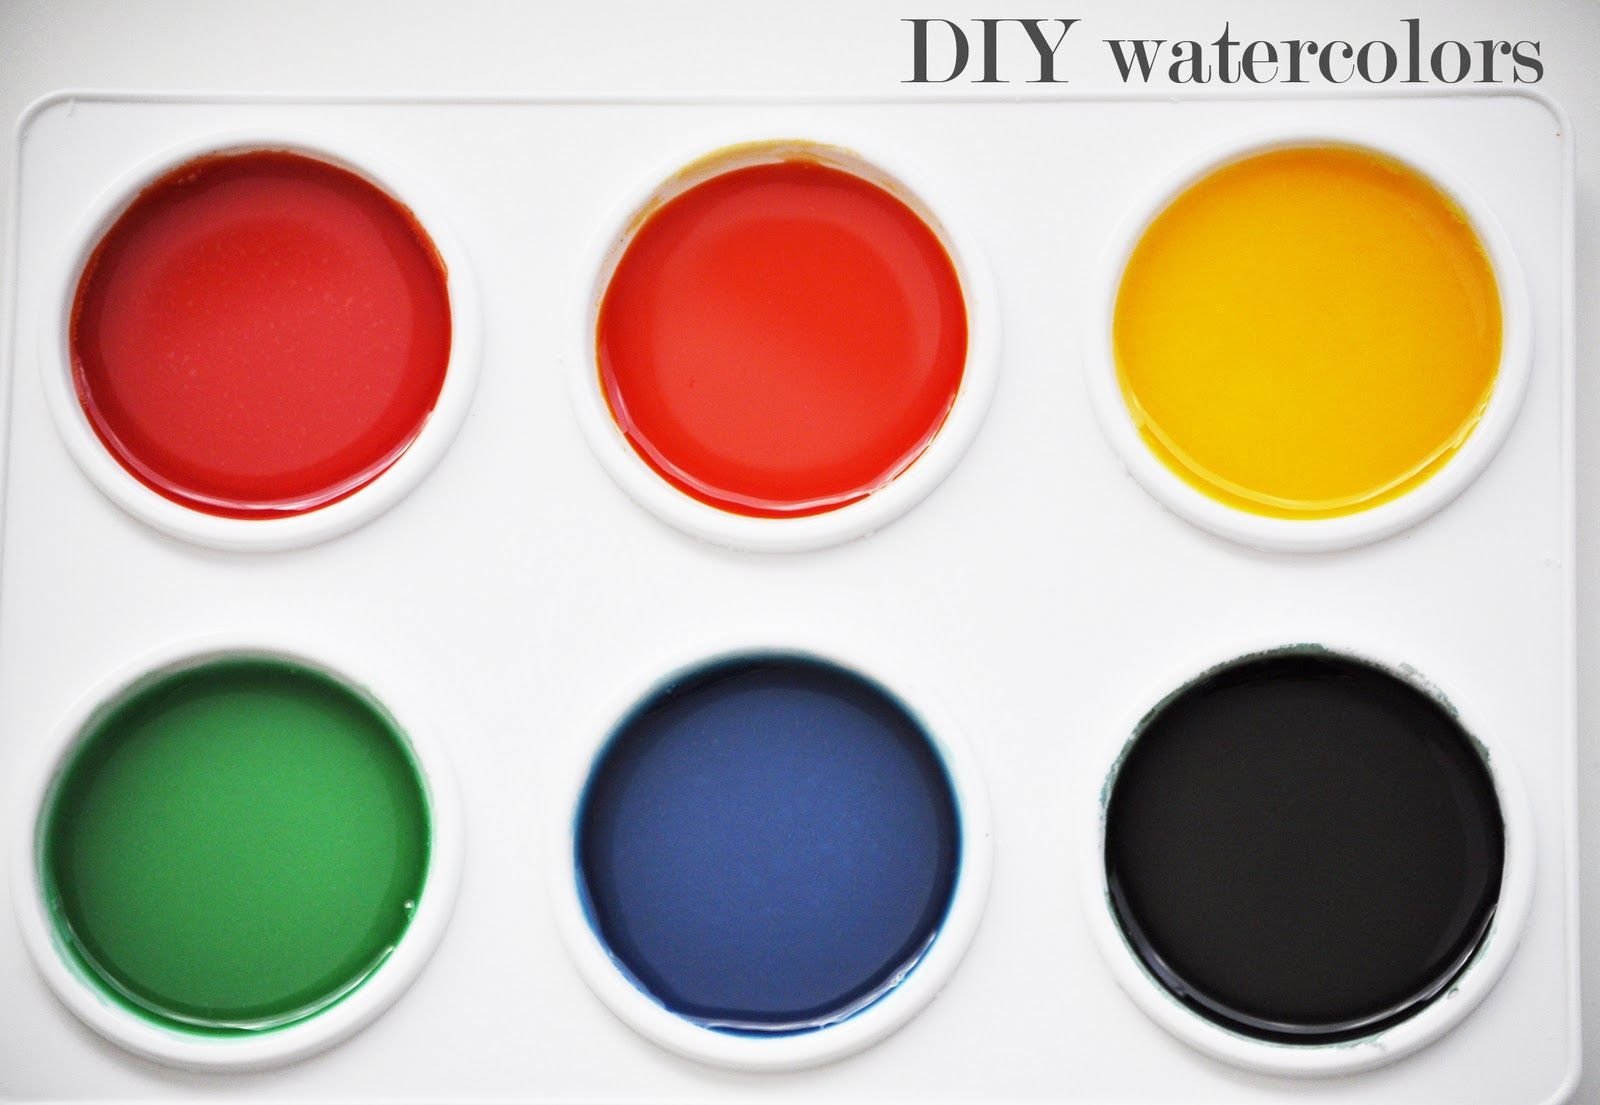 diy watercolor paints totallymust do pinterest watercolor silhouettes and craft